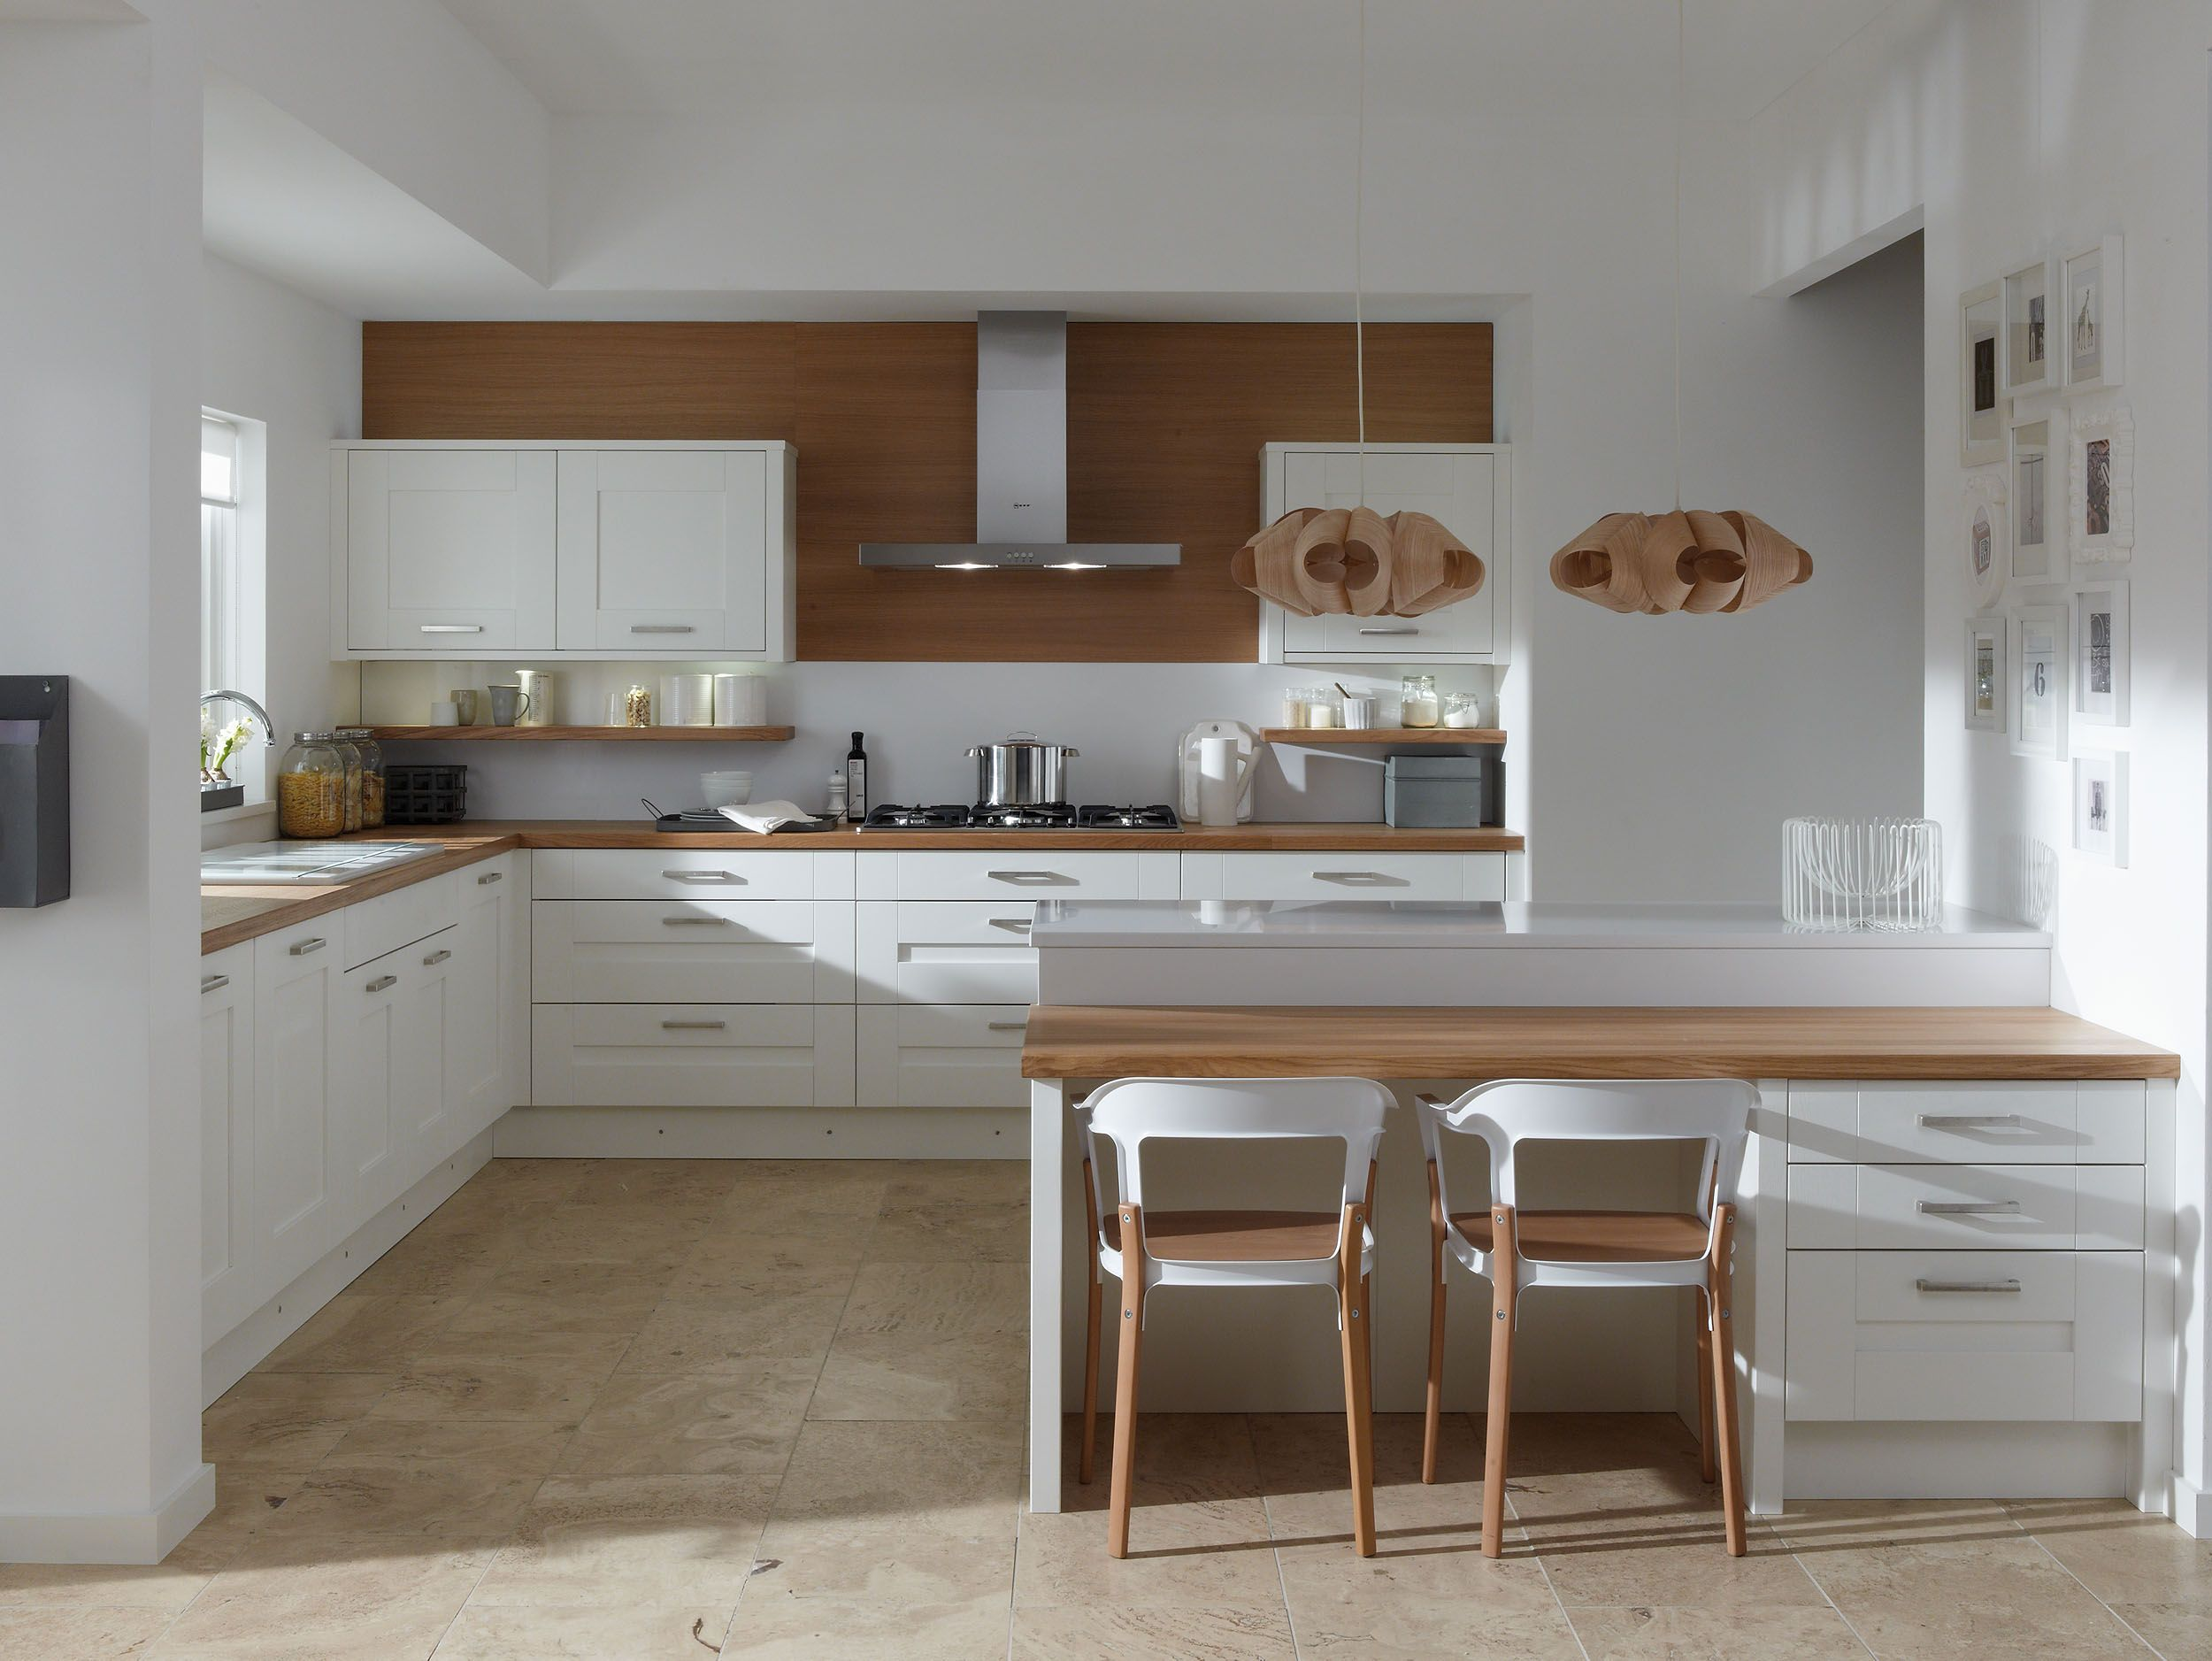 5 Things to Do Before Starting A Kitchen Design Project | Kitchens ...